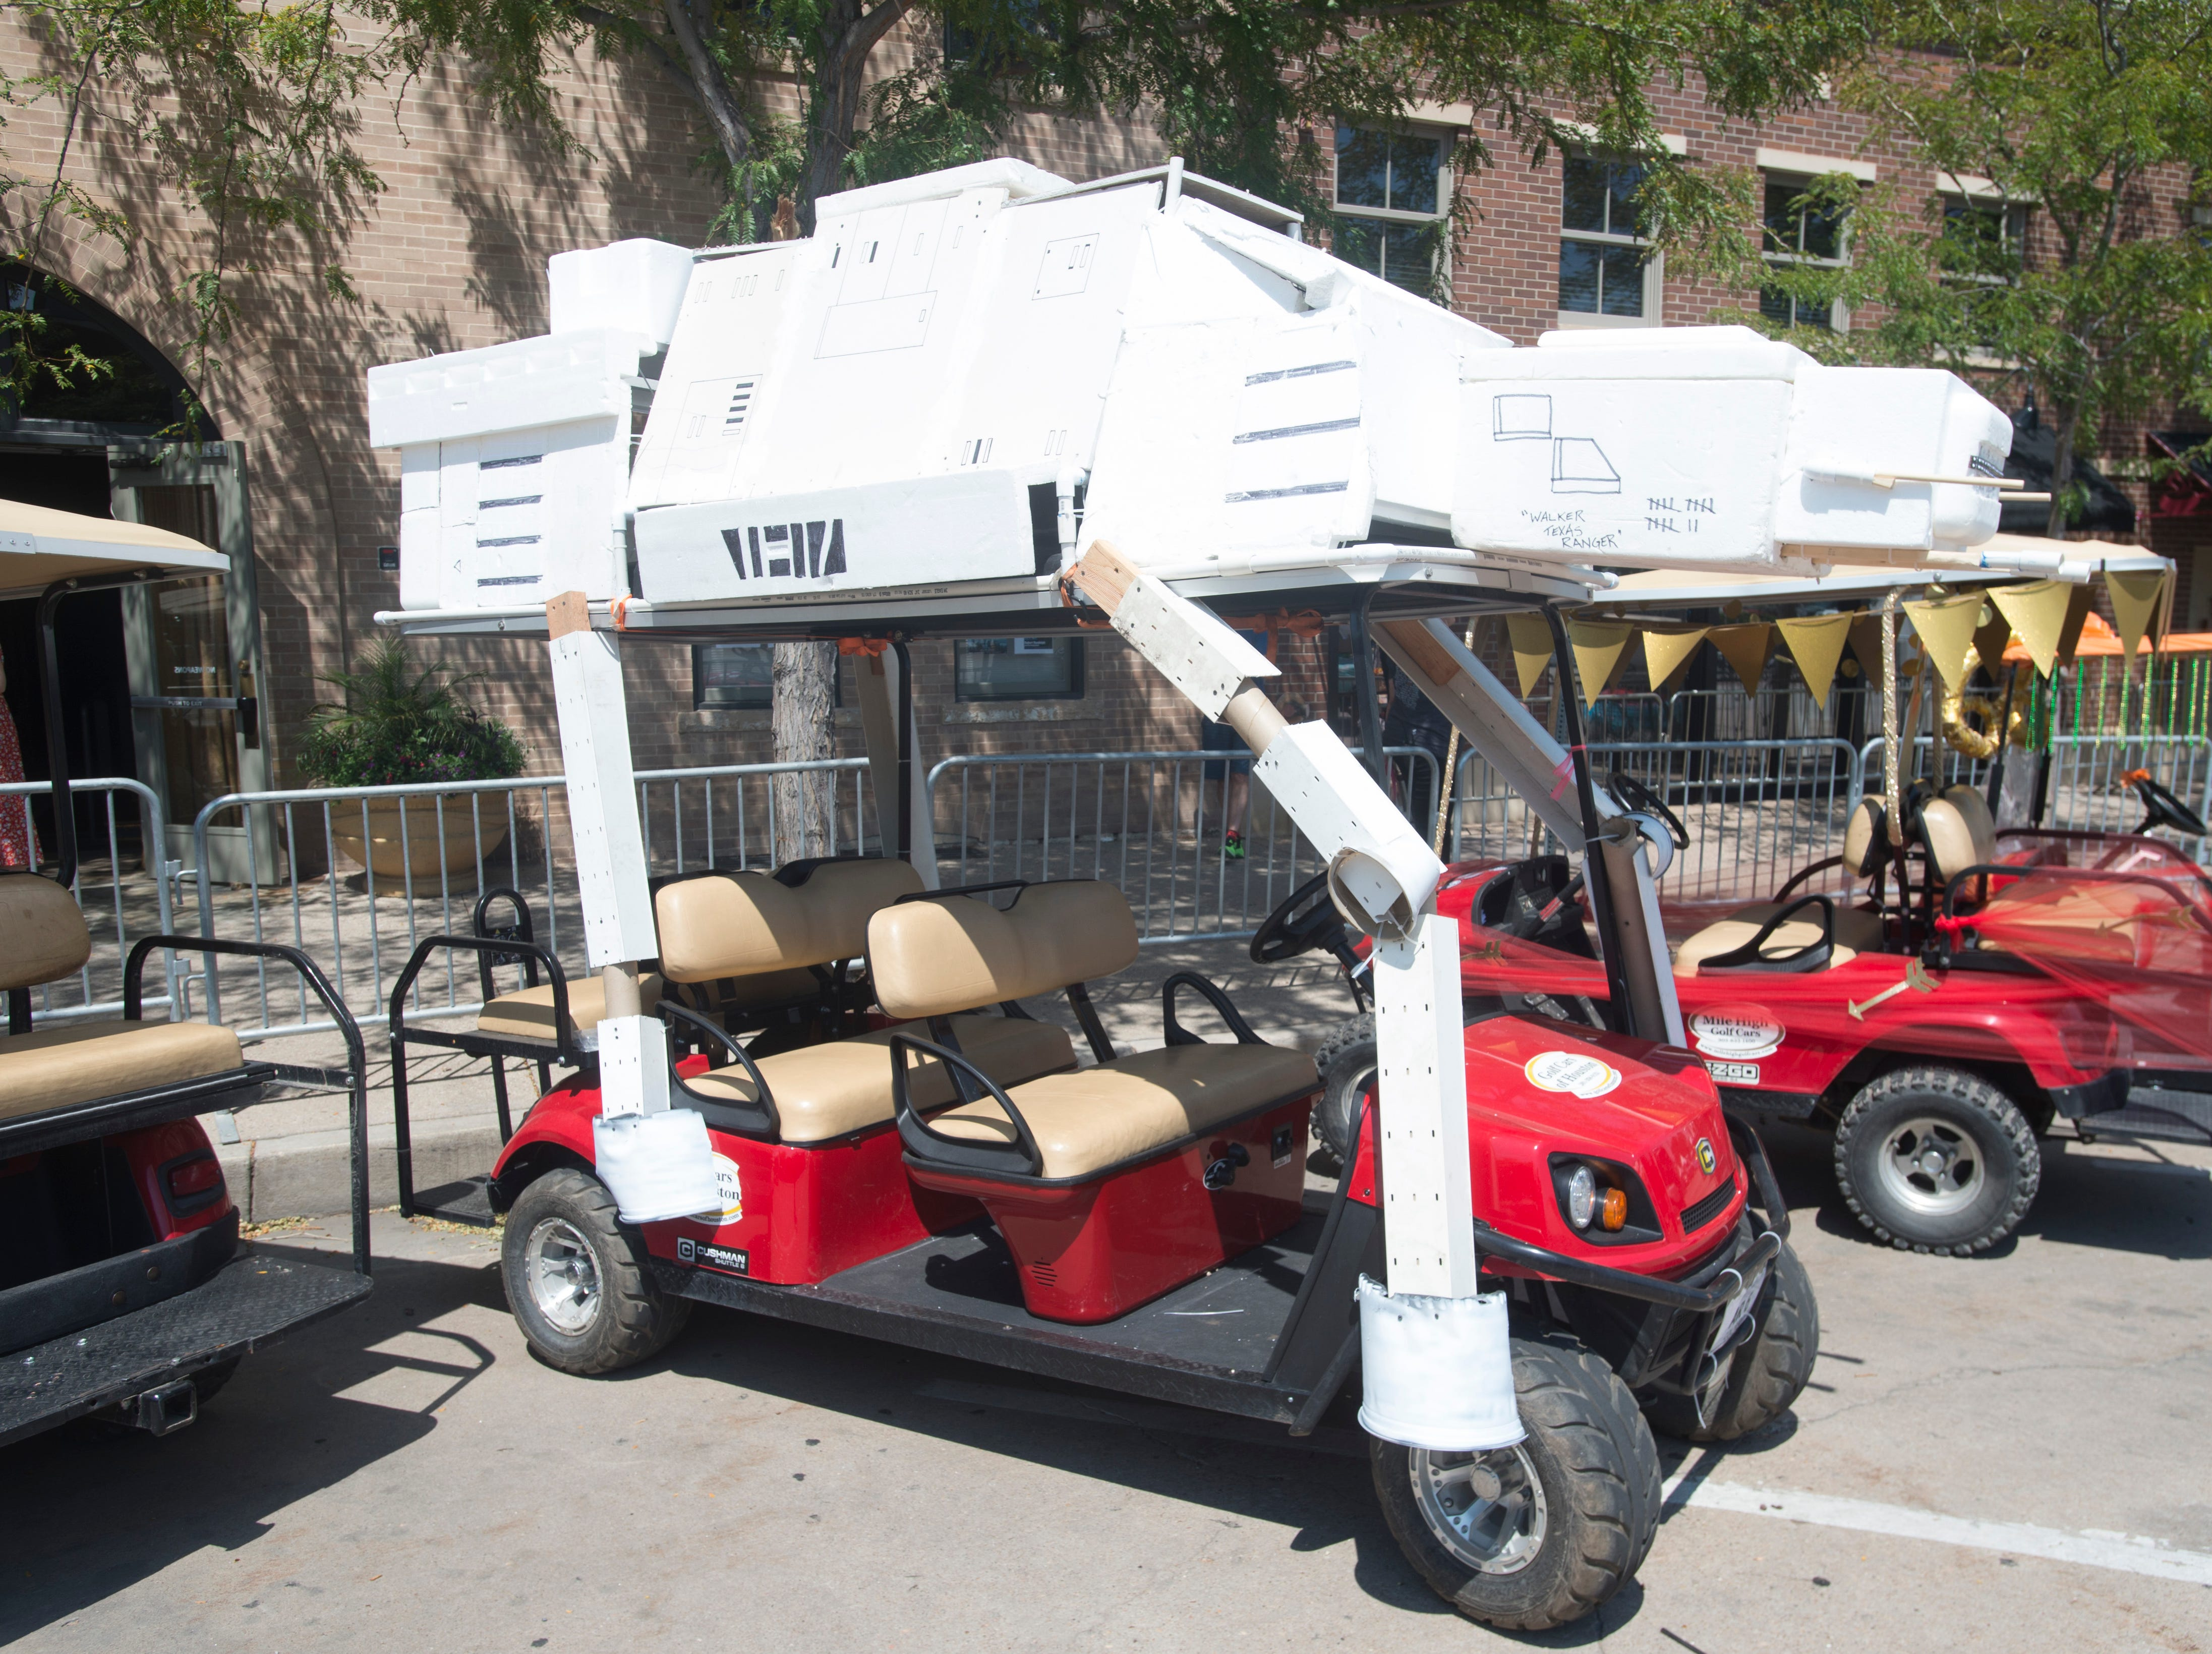 Golf Cart 7: Vote for your favorite NewWestFest decorated golf cart.